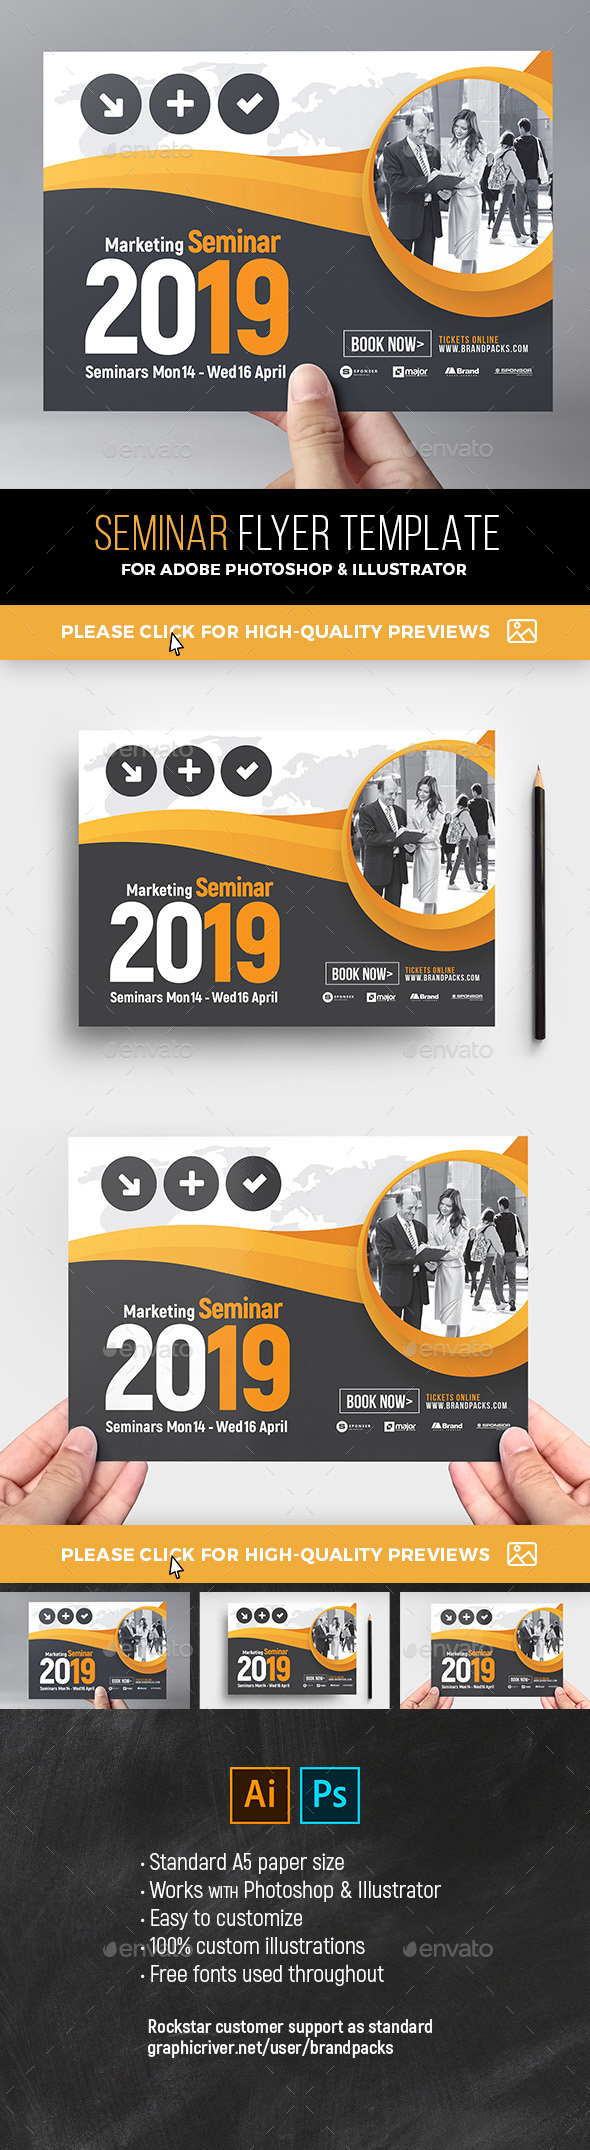 Seminar Flyer Template - Corporate Flyers